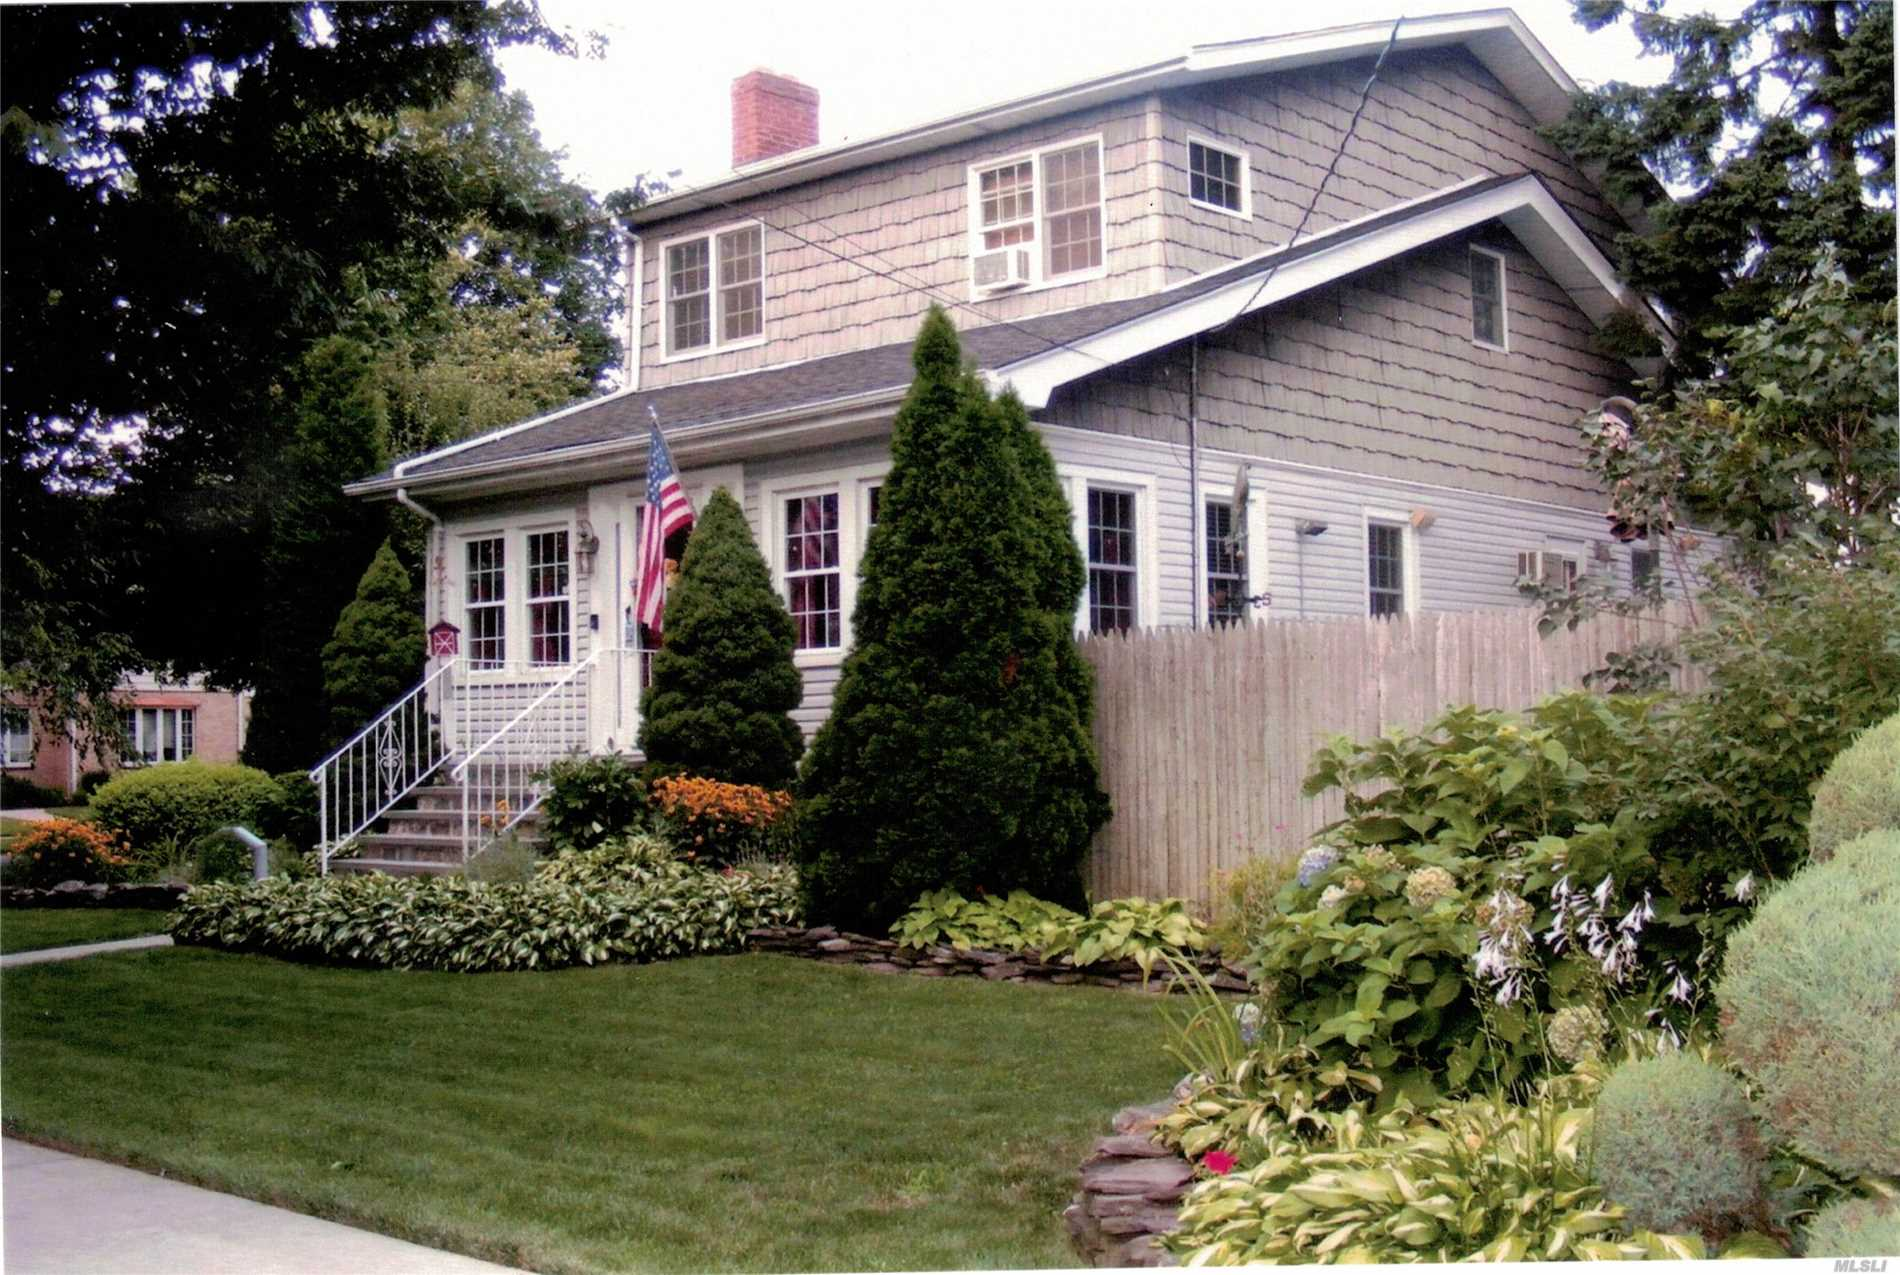 Magnificent Detached 3 Bedroom, 3 Full Bath Colonial located on a Quiet Tree Lined Street in the Heart of Beautiful Bayside. Convenient To All Shopping Along Bell Blvd & Bay Terrace Shopping Center. 7-10 Minute Walk To Lirr. Q12, Q13 To No. 7 Train, Main St, Fl. All House Of Worship Nearby. Easy Access To All Major Hwys. Lots & Lots Of Extras. Dining Rm Fixture Excluded. Must See This Georgeous Corner 70x100 Property. Above Ground Pool. This Home Has it All. Not to be missed! Sch Dst. 26